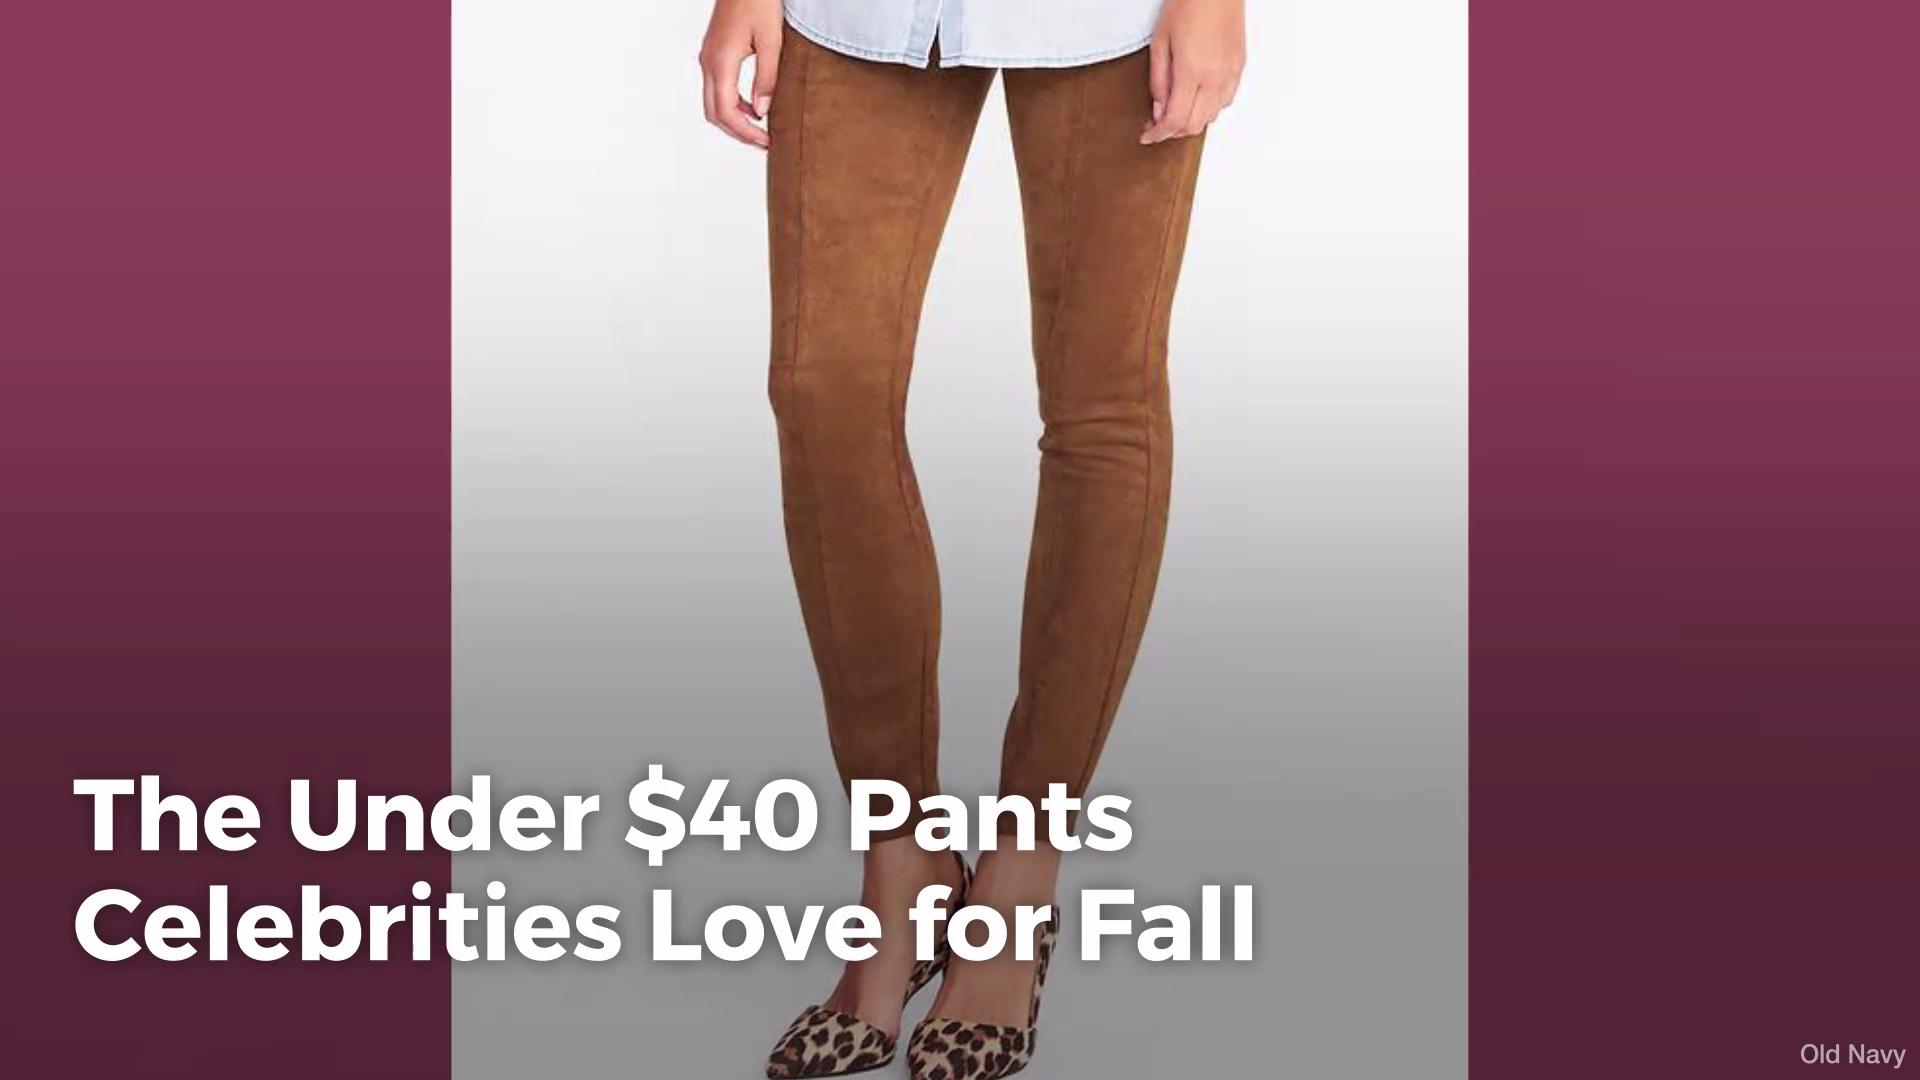 9a35fda250475 The Under  40 Pants Celebrities Love for Fall